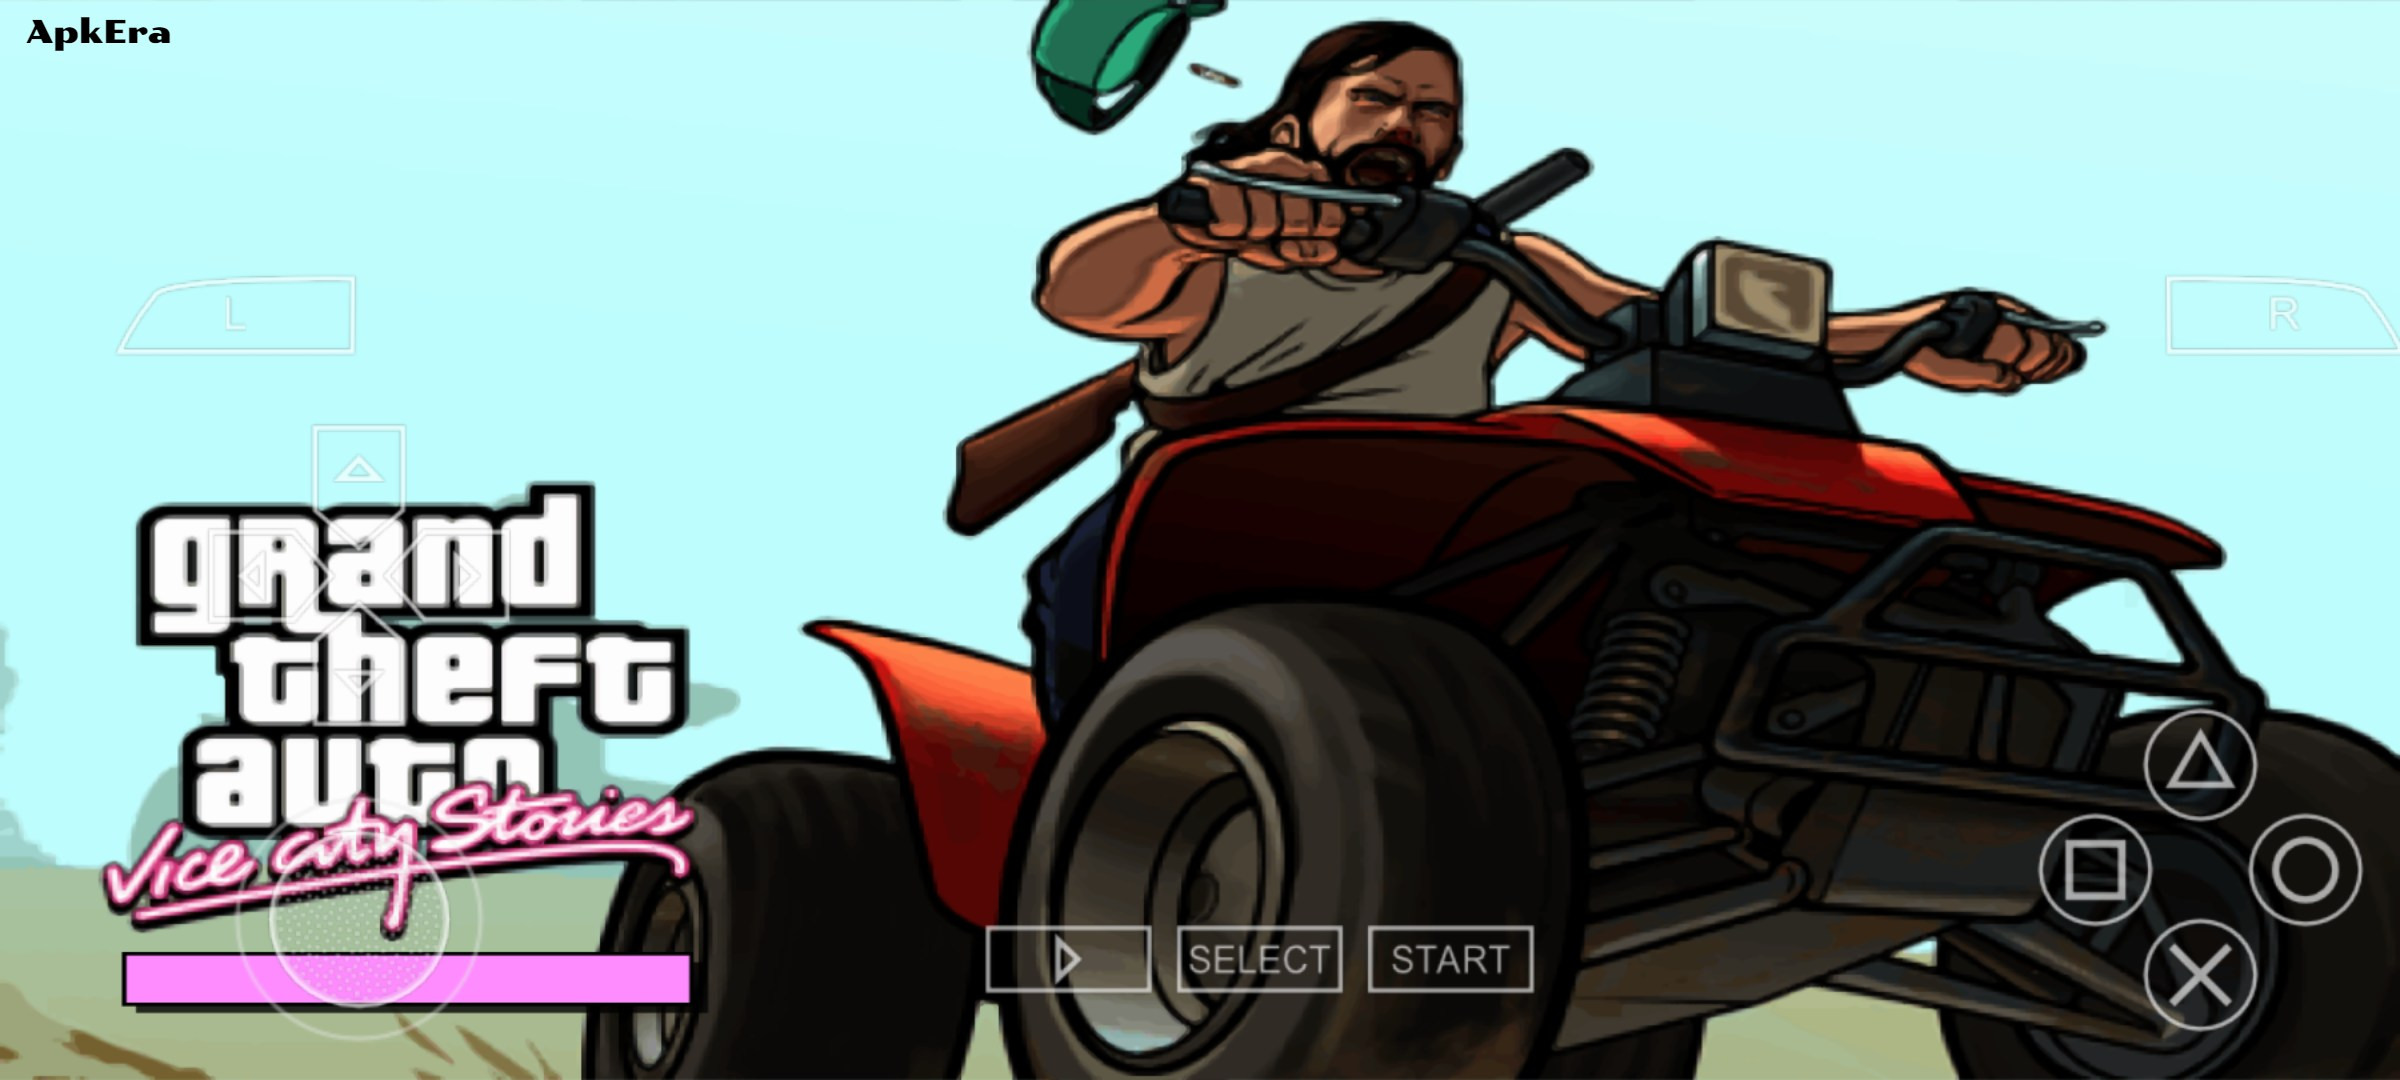 Grand Theft Auto: Vice City Stories PPSSPP Download